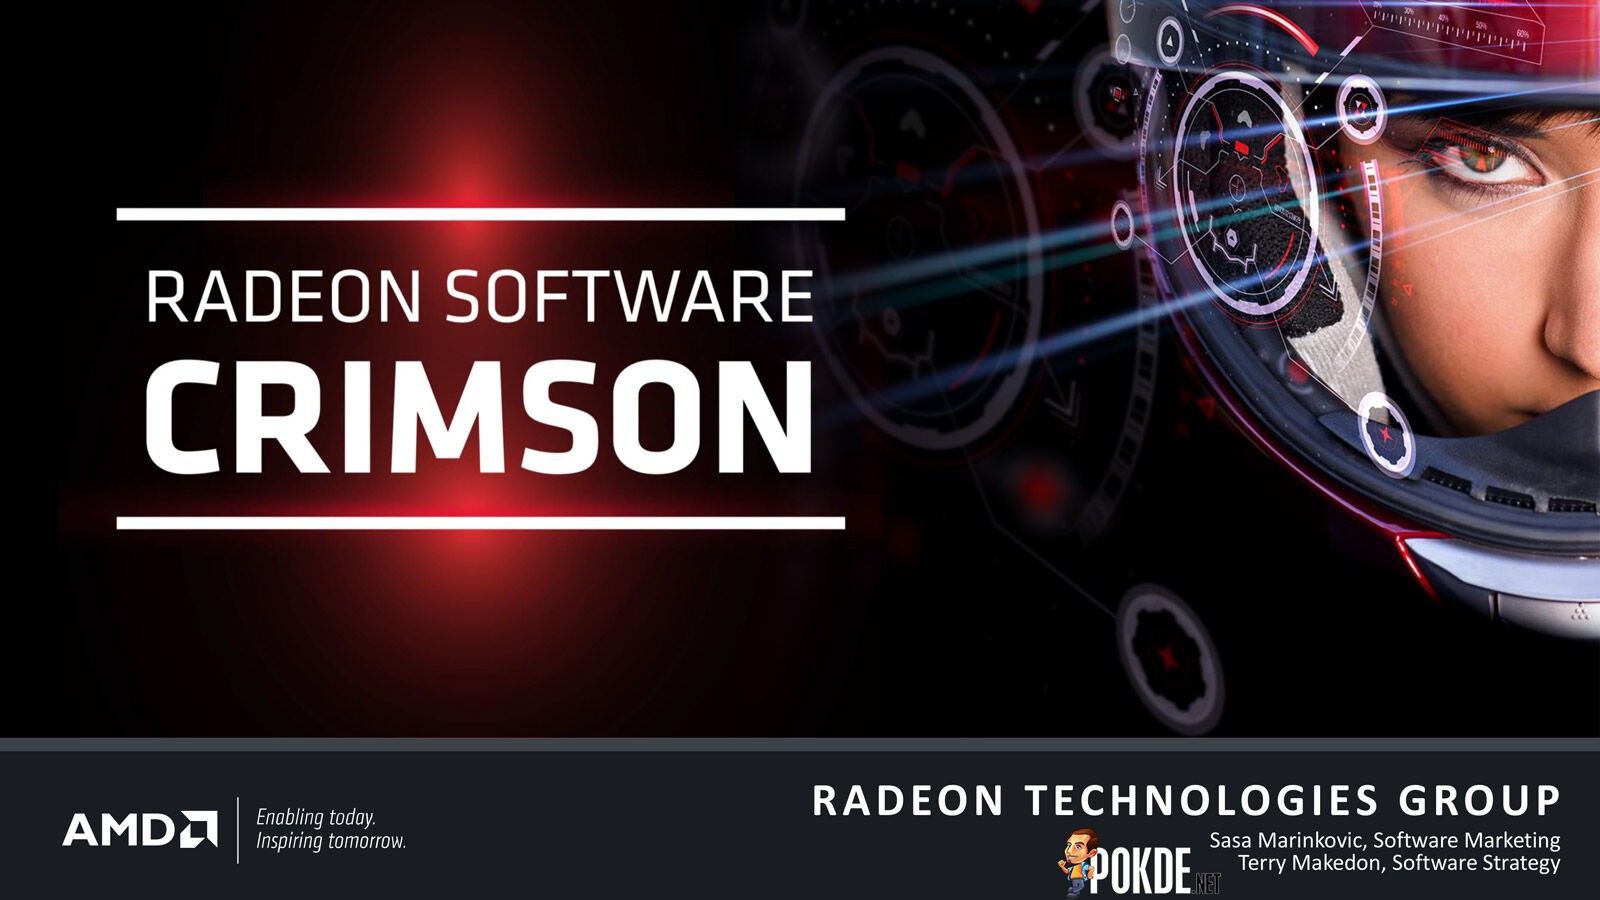 Radeon Technologies Group launched their first product today — Radeon Software Crimson Edition 25